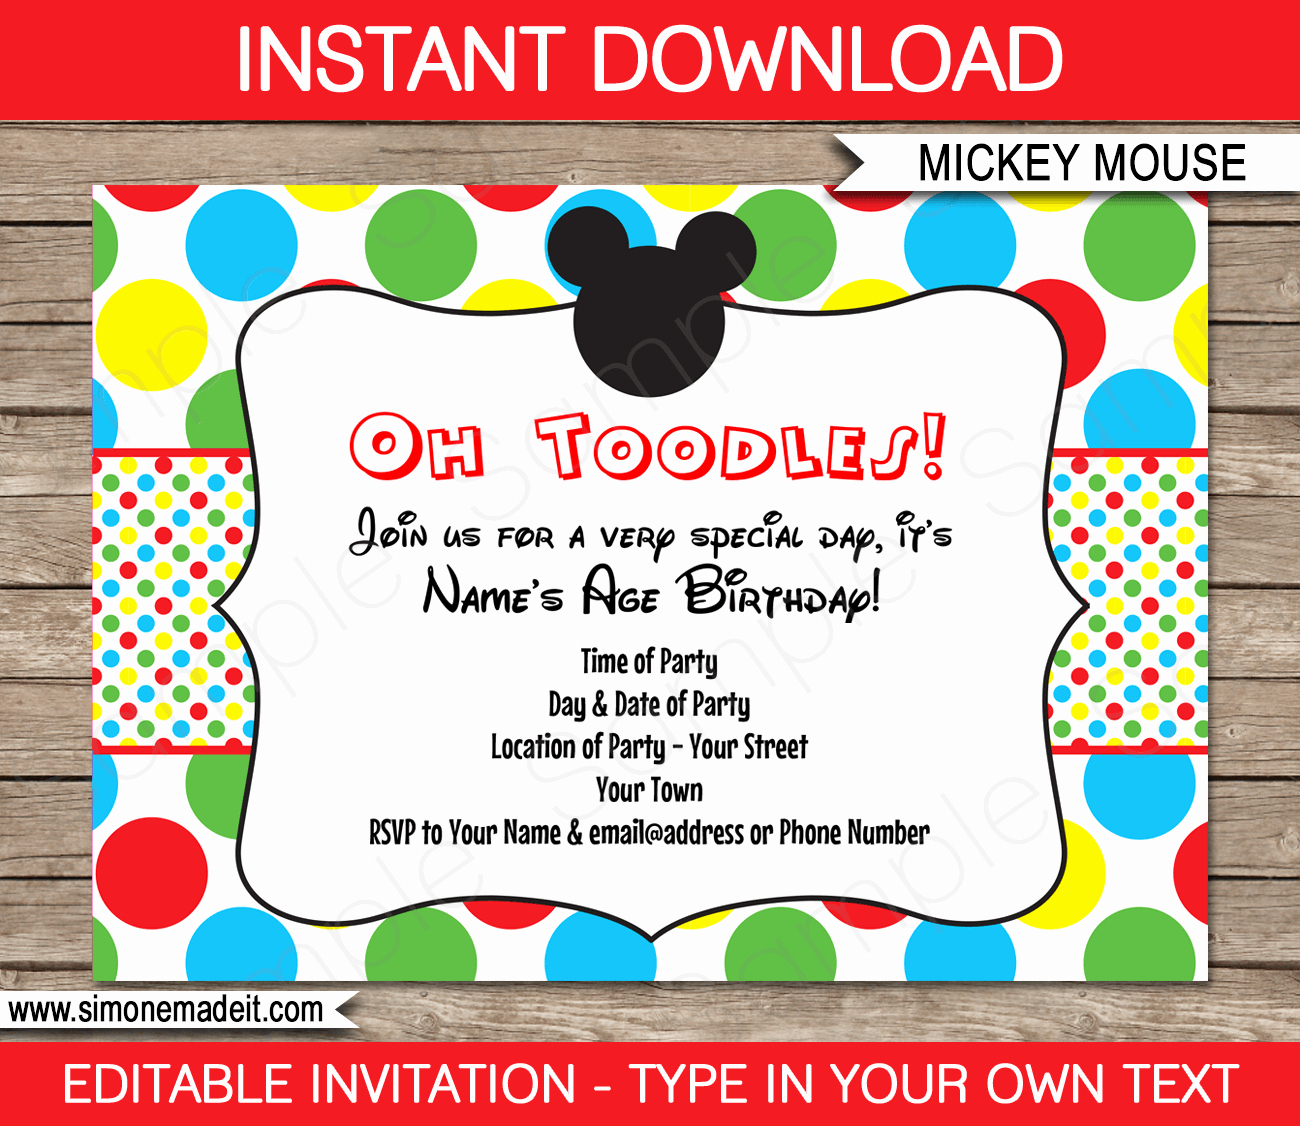 Mickey Mouse Clubhouse Birthday Invitation Elegant Mickey Mouse Party Invitations Template